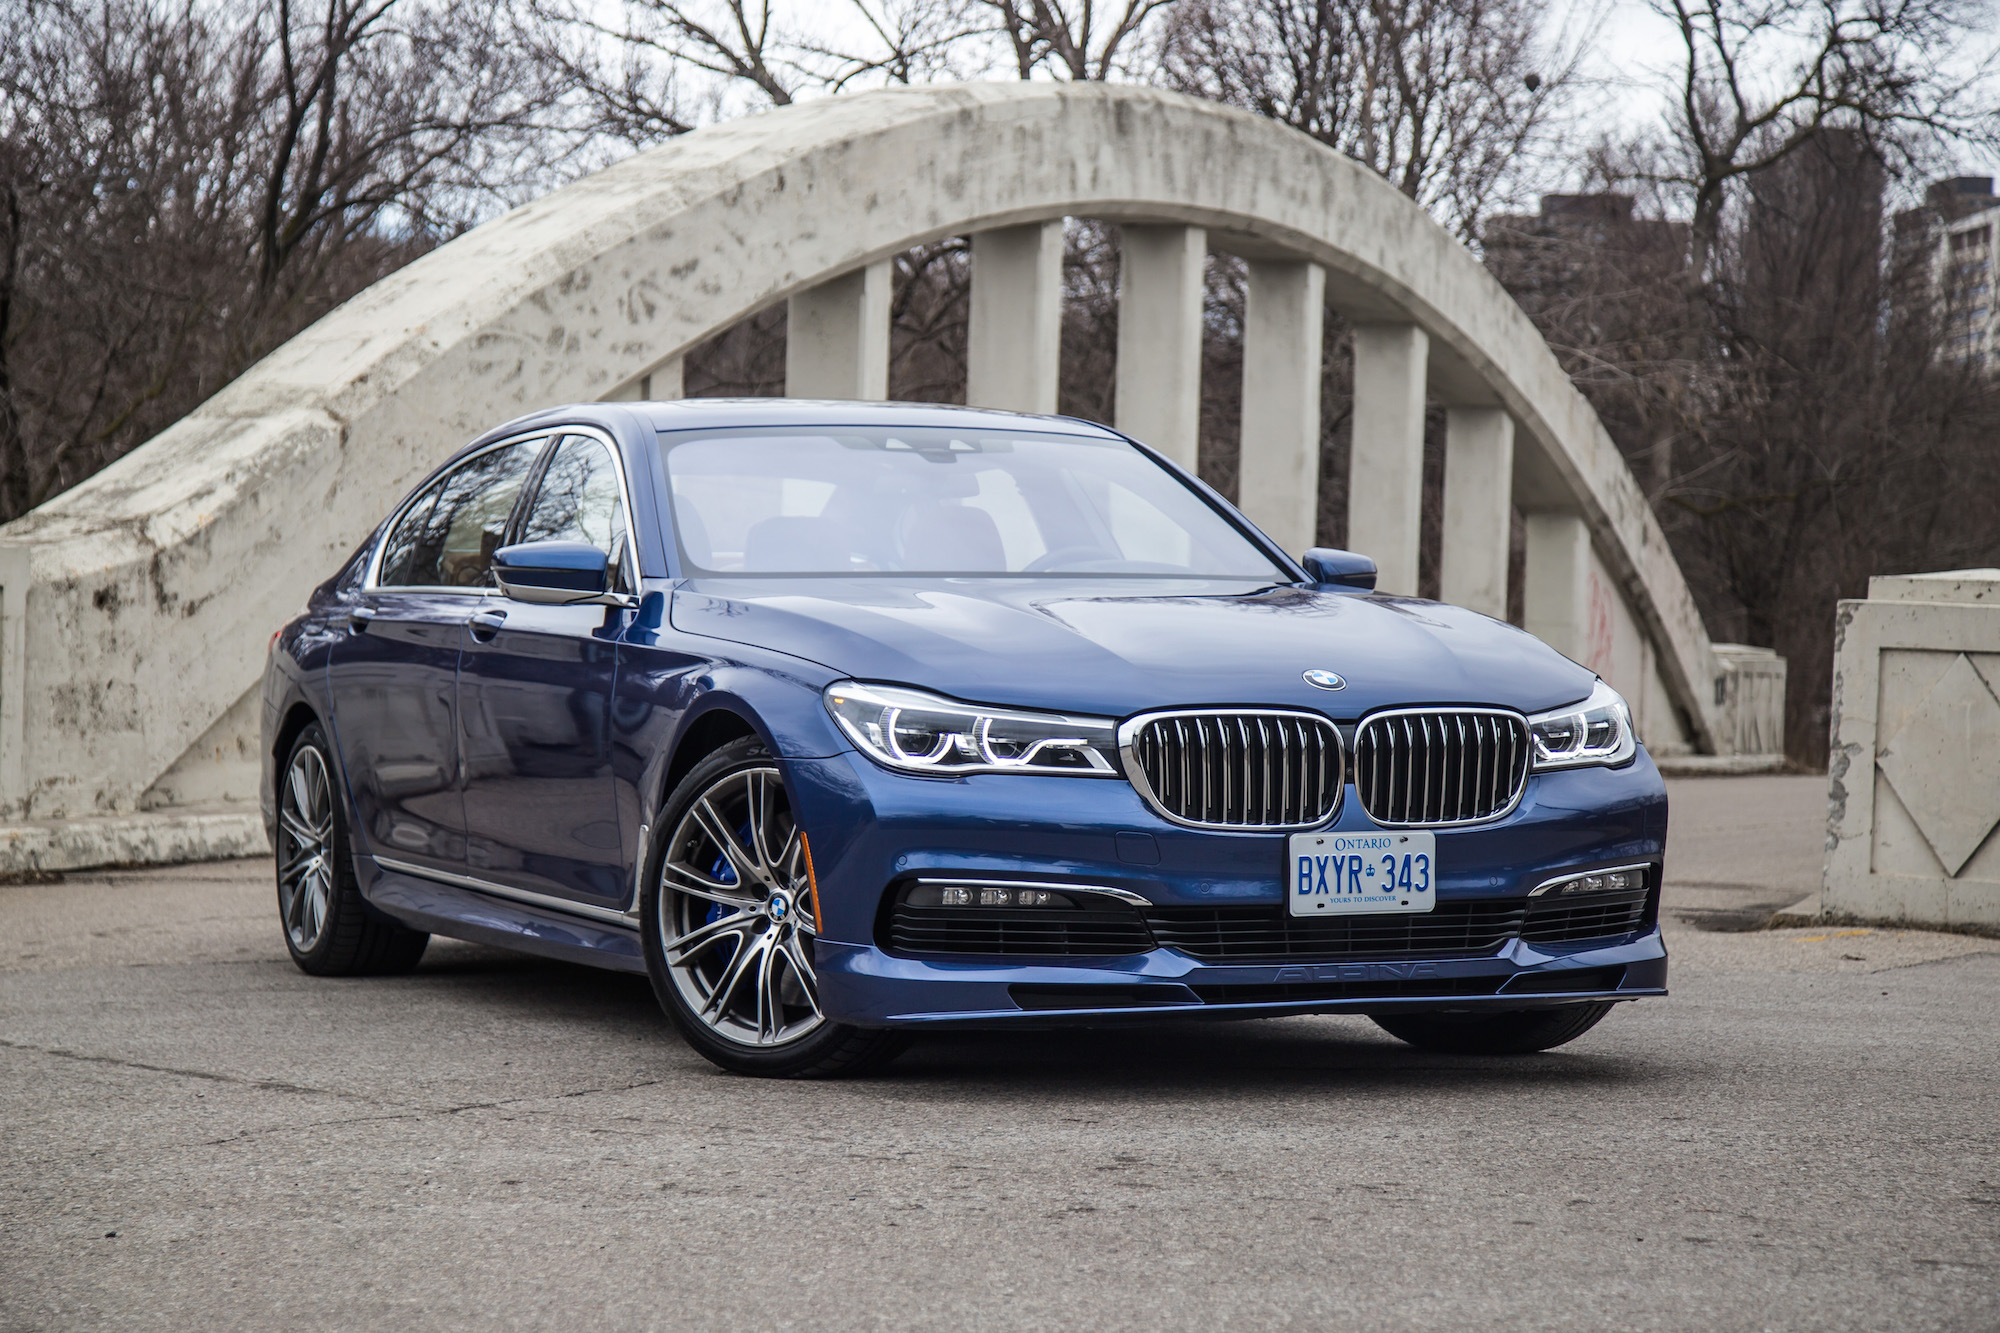 revealed in alpina photo release bmw specs within review gallery officially performances price date image xdrive rendered amp